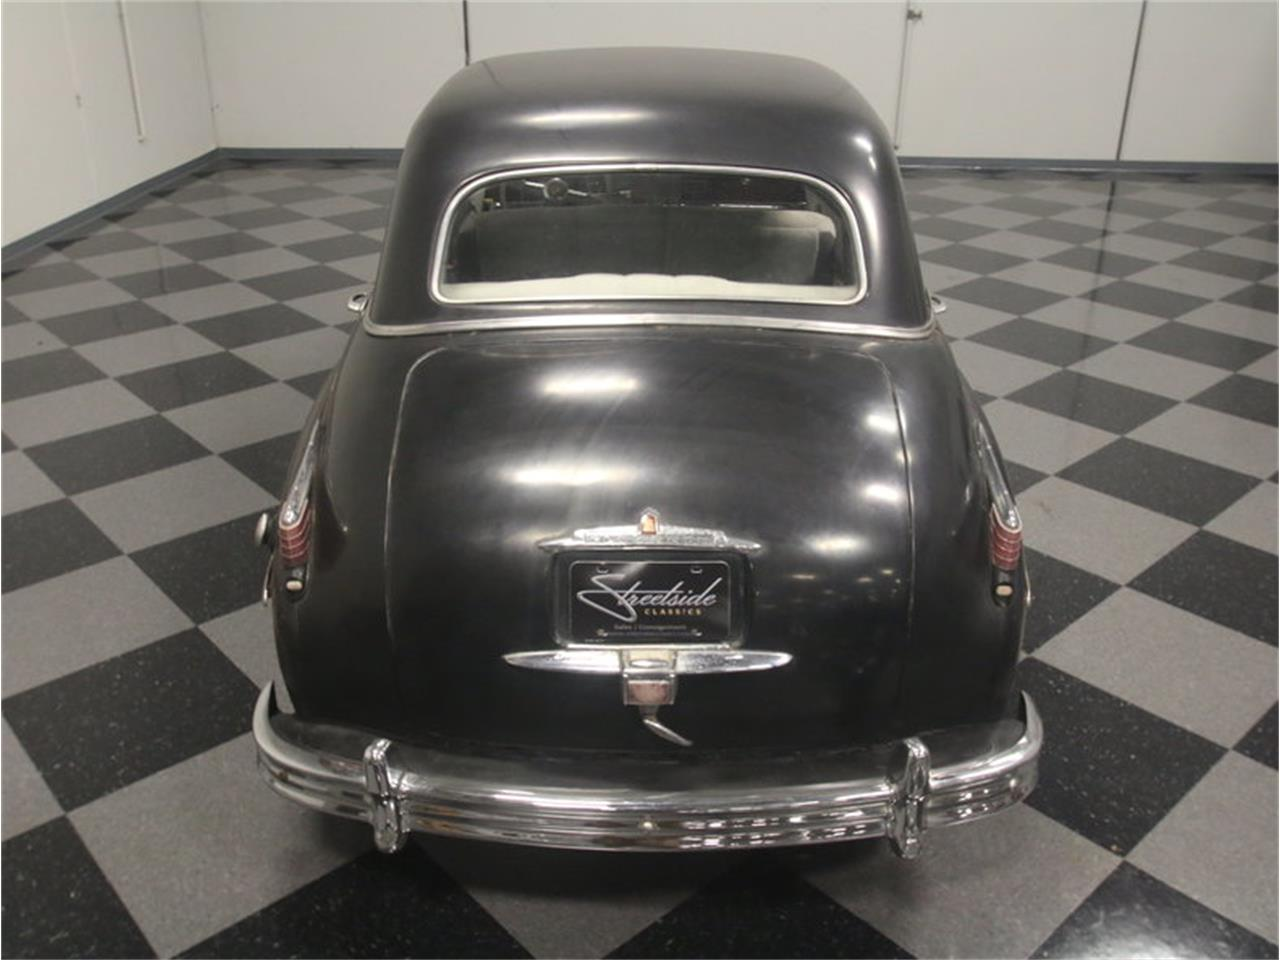 Large Picture of '49 Plymouth Special Deluxe located in Georgia - $8,995.00 Offered by Streetside Classics - Atlanta - L551